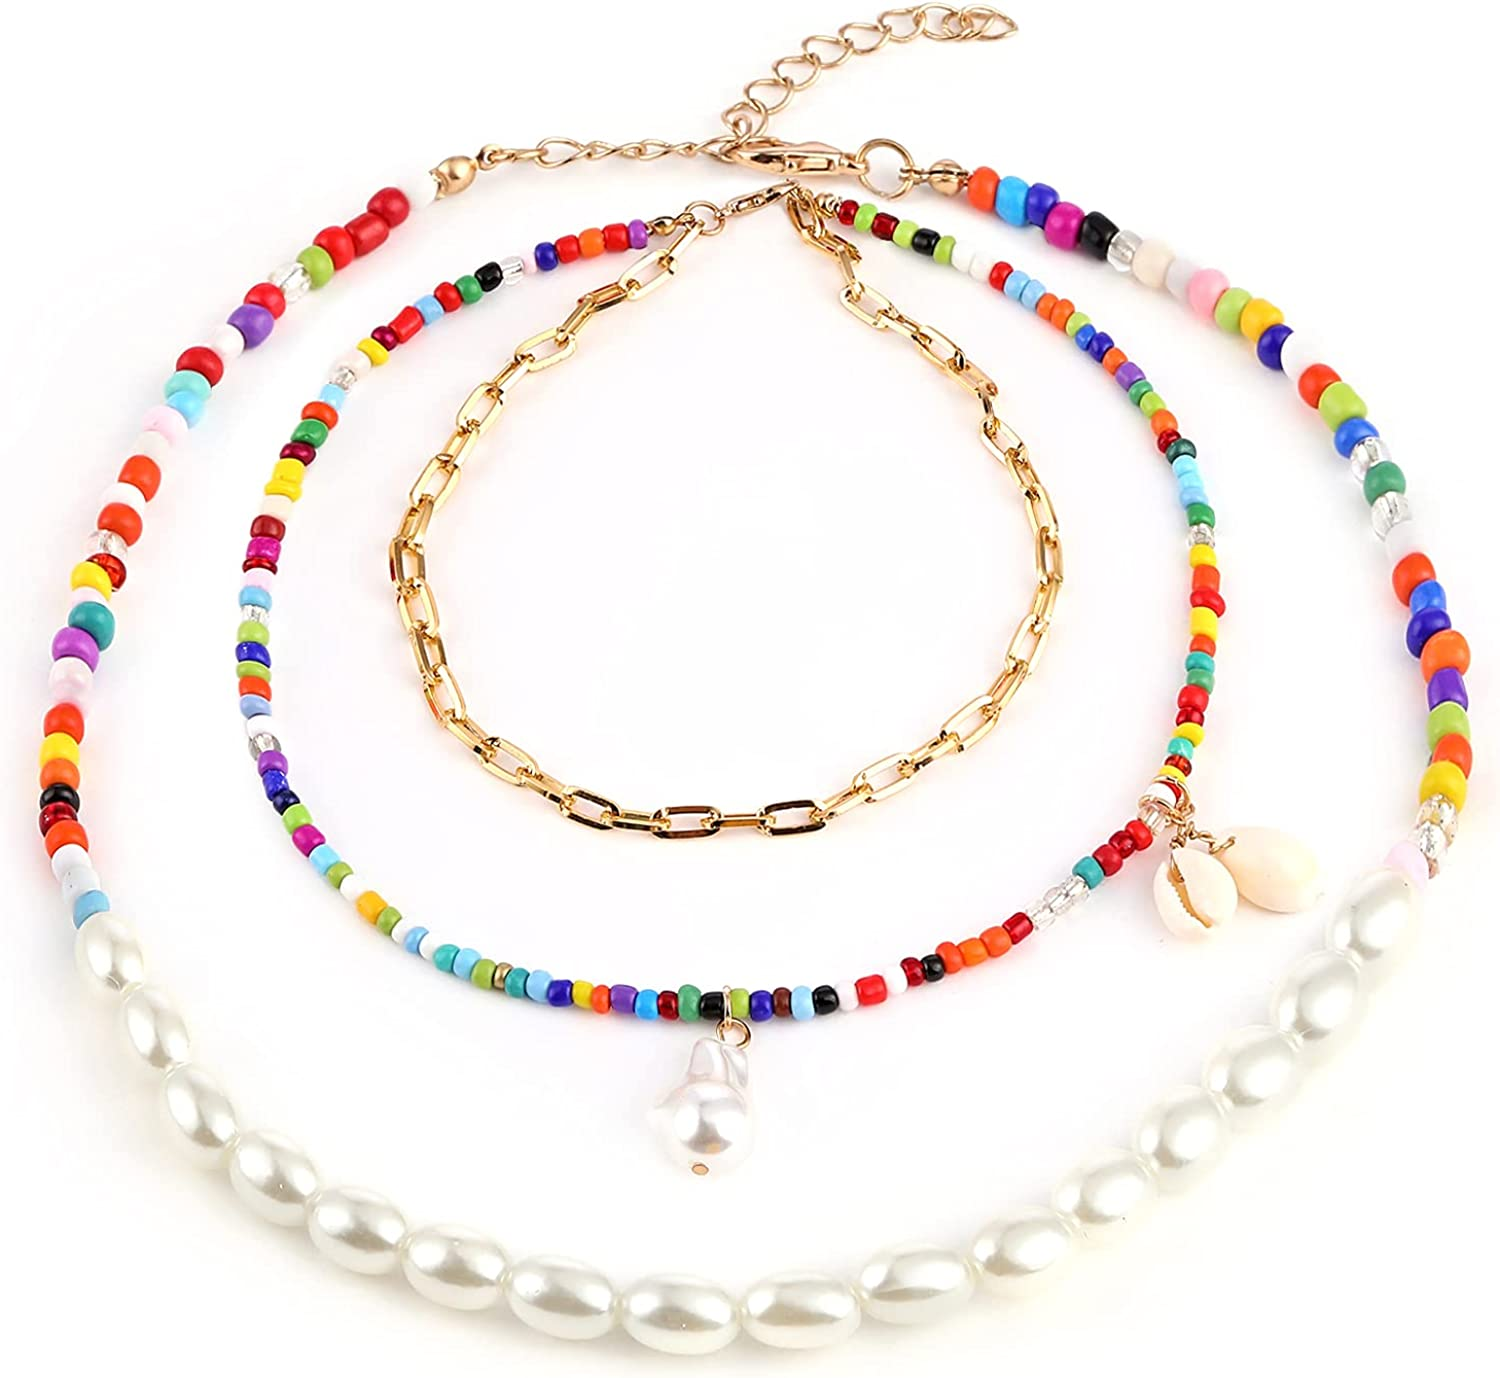 Layered Rainbow Beaded Choker Necklaces Pearl Shell Puka Handmade Paperclip Chain Necklace for Woman Girls Bohemian Boho Jewelry Colorful Beads Irregular Pearls Pendant Chokers